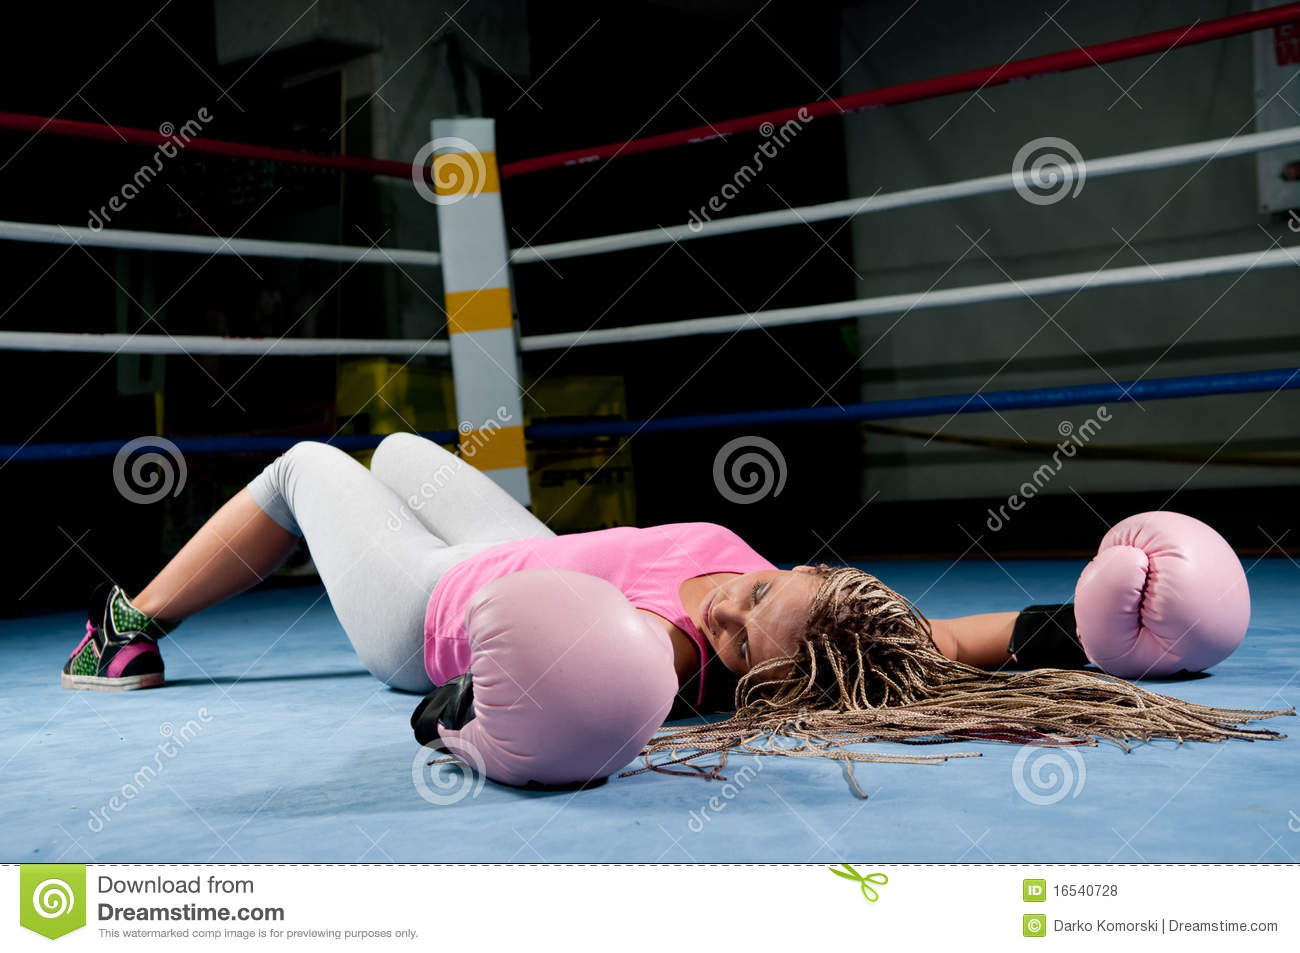 That Picture of knocked out women